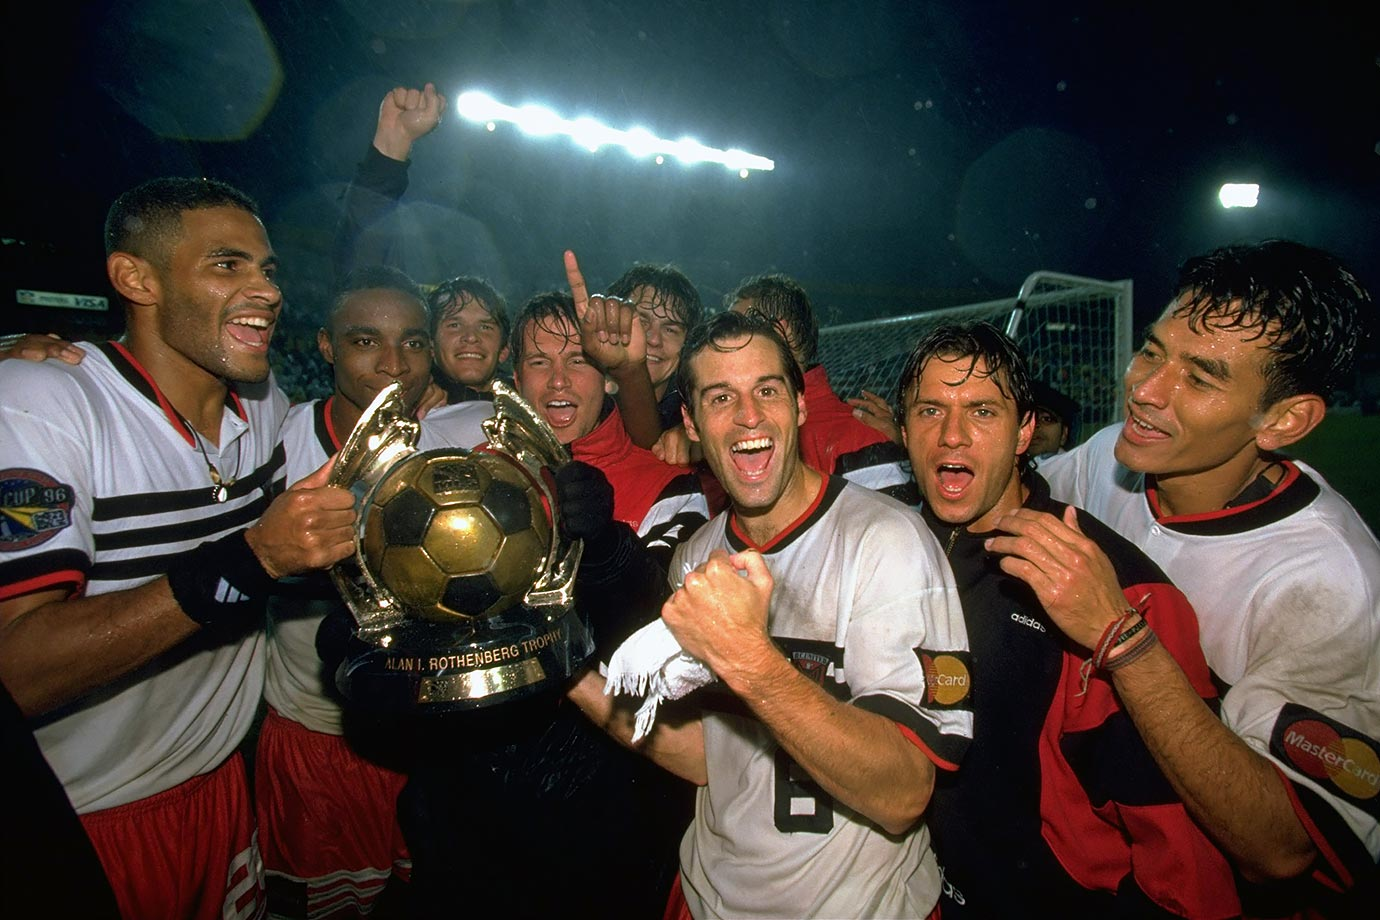 <p>1996 — D.C. United (beat LA Galaxy 3-2 in extra time)</p>